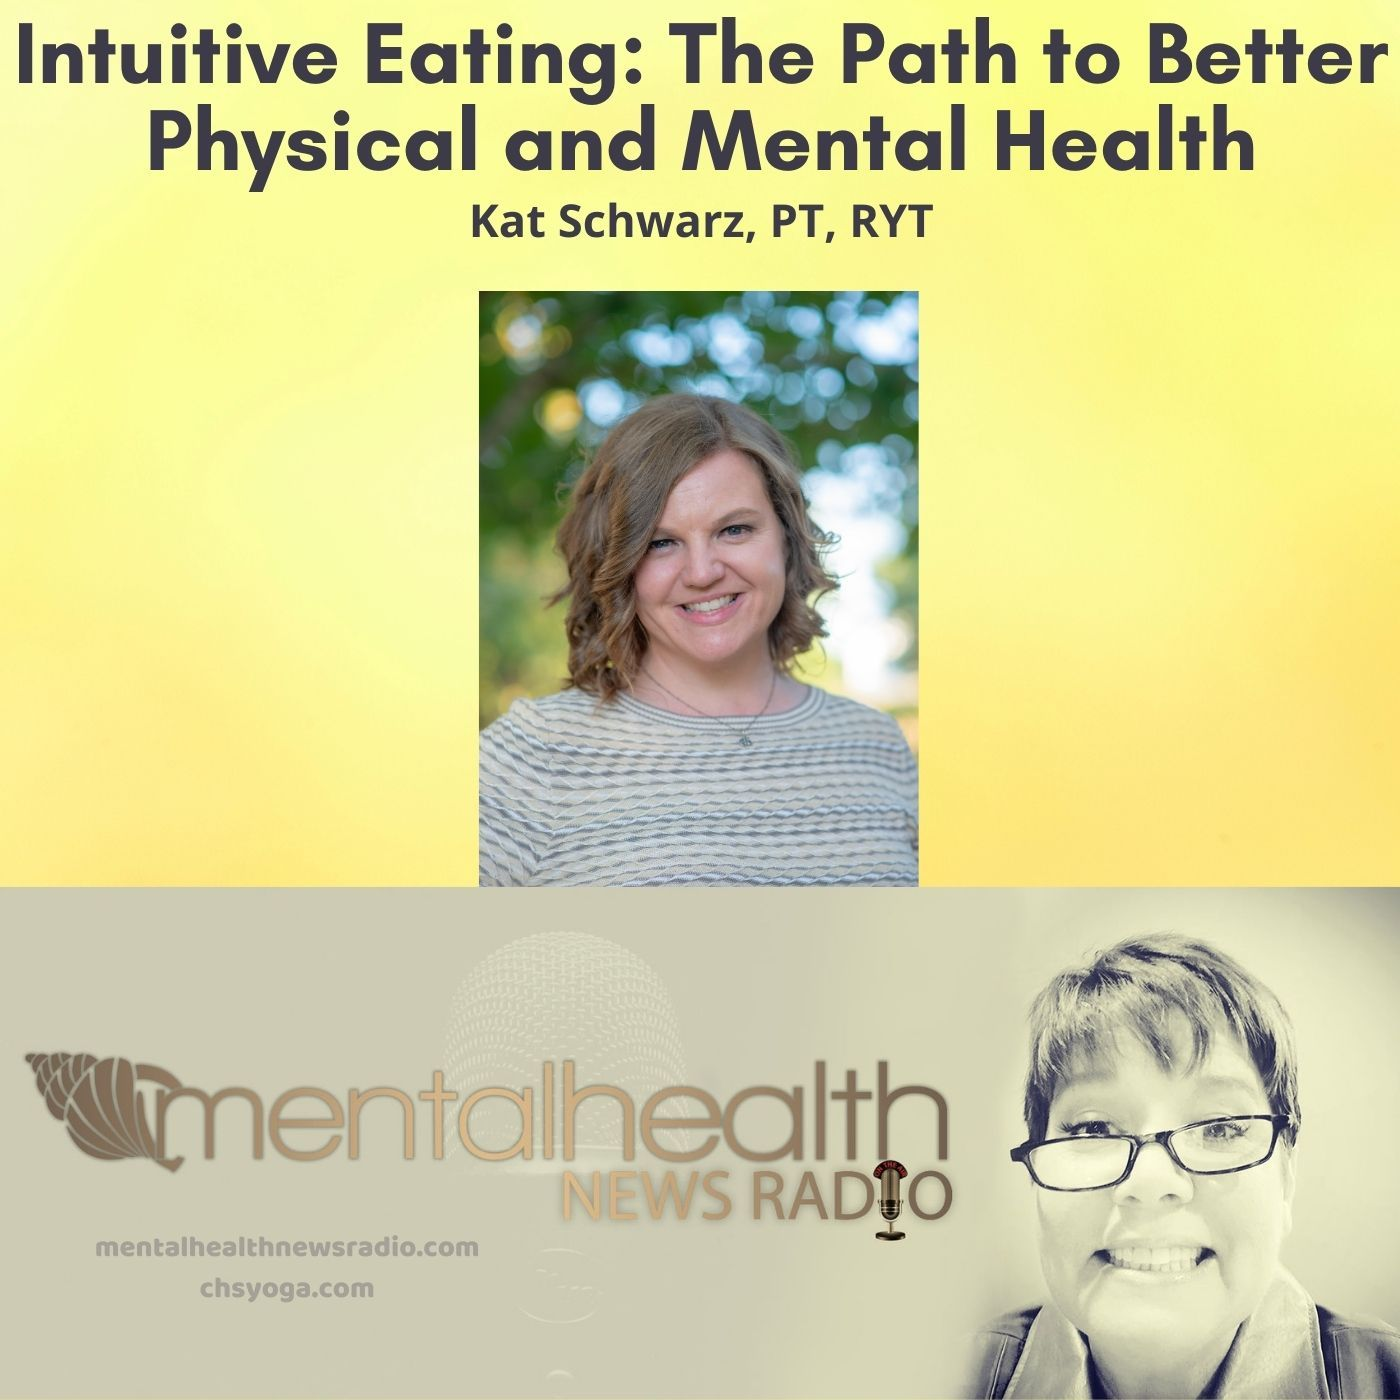 Mental Health News Radio - Intuitive Eating: The Path to Better Physical and Mental Health